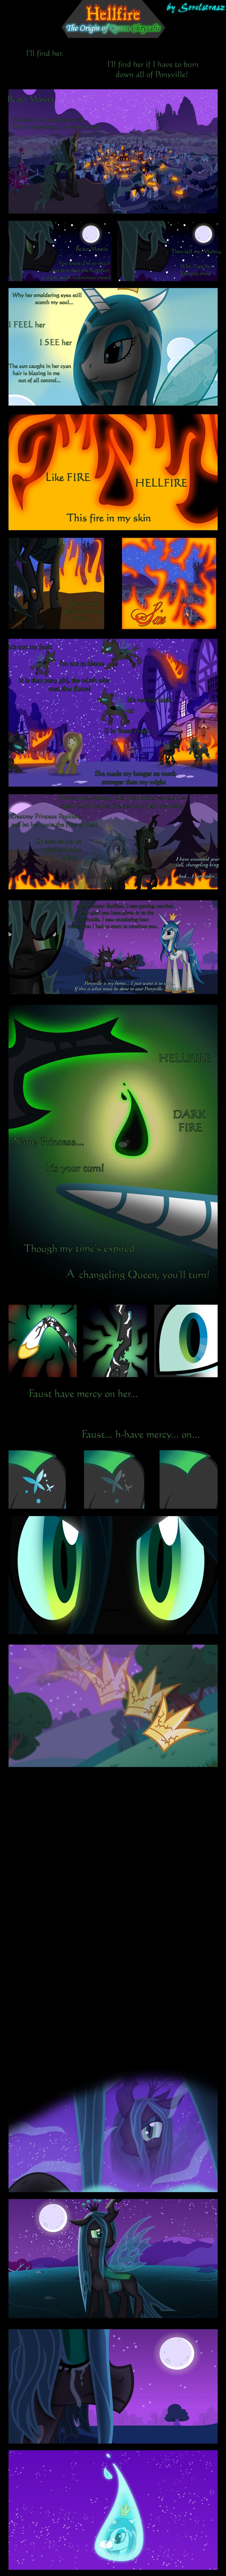 Hellfire: The Origin of Queen Chrysalis by Sorelstrasz.deviantart.com on @deviantART